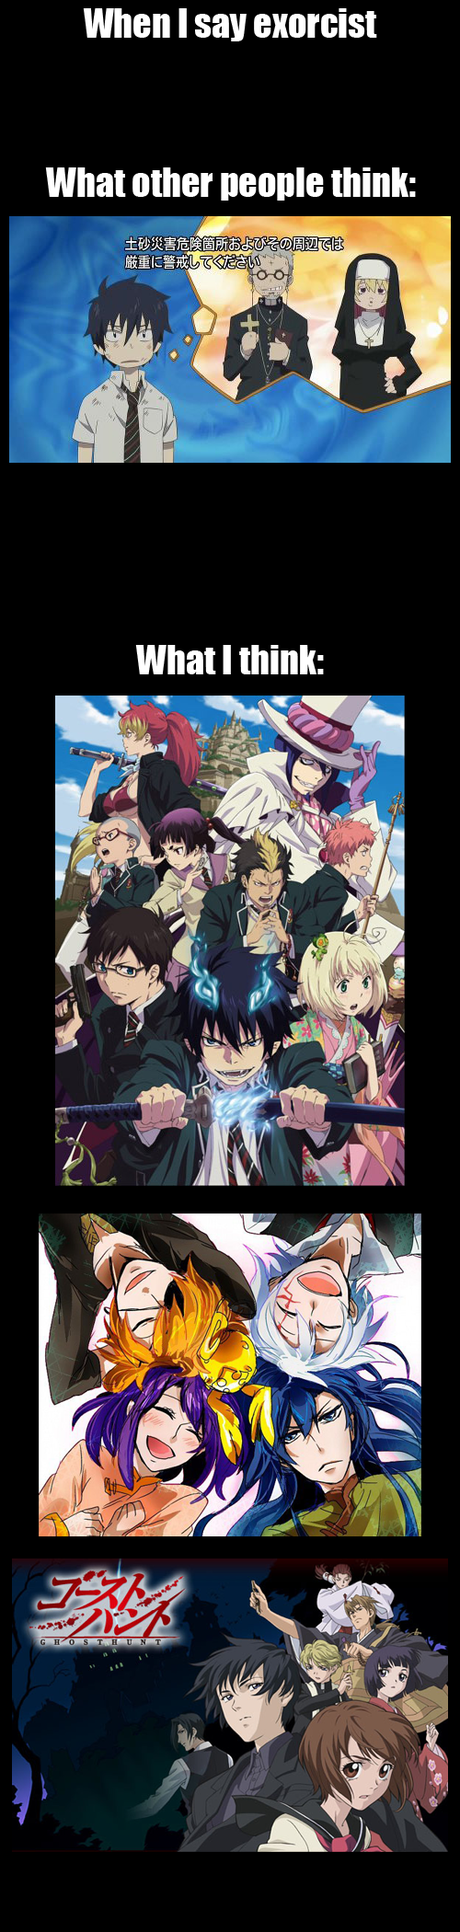 YES!! D. Gray man, Blue Exorcist AND Ghost Hunt! There is so much win here! X]